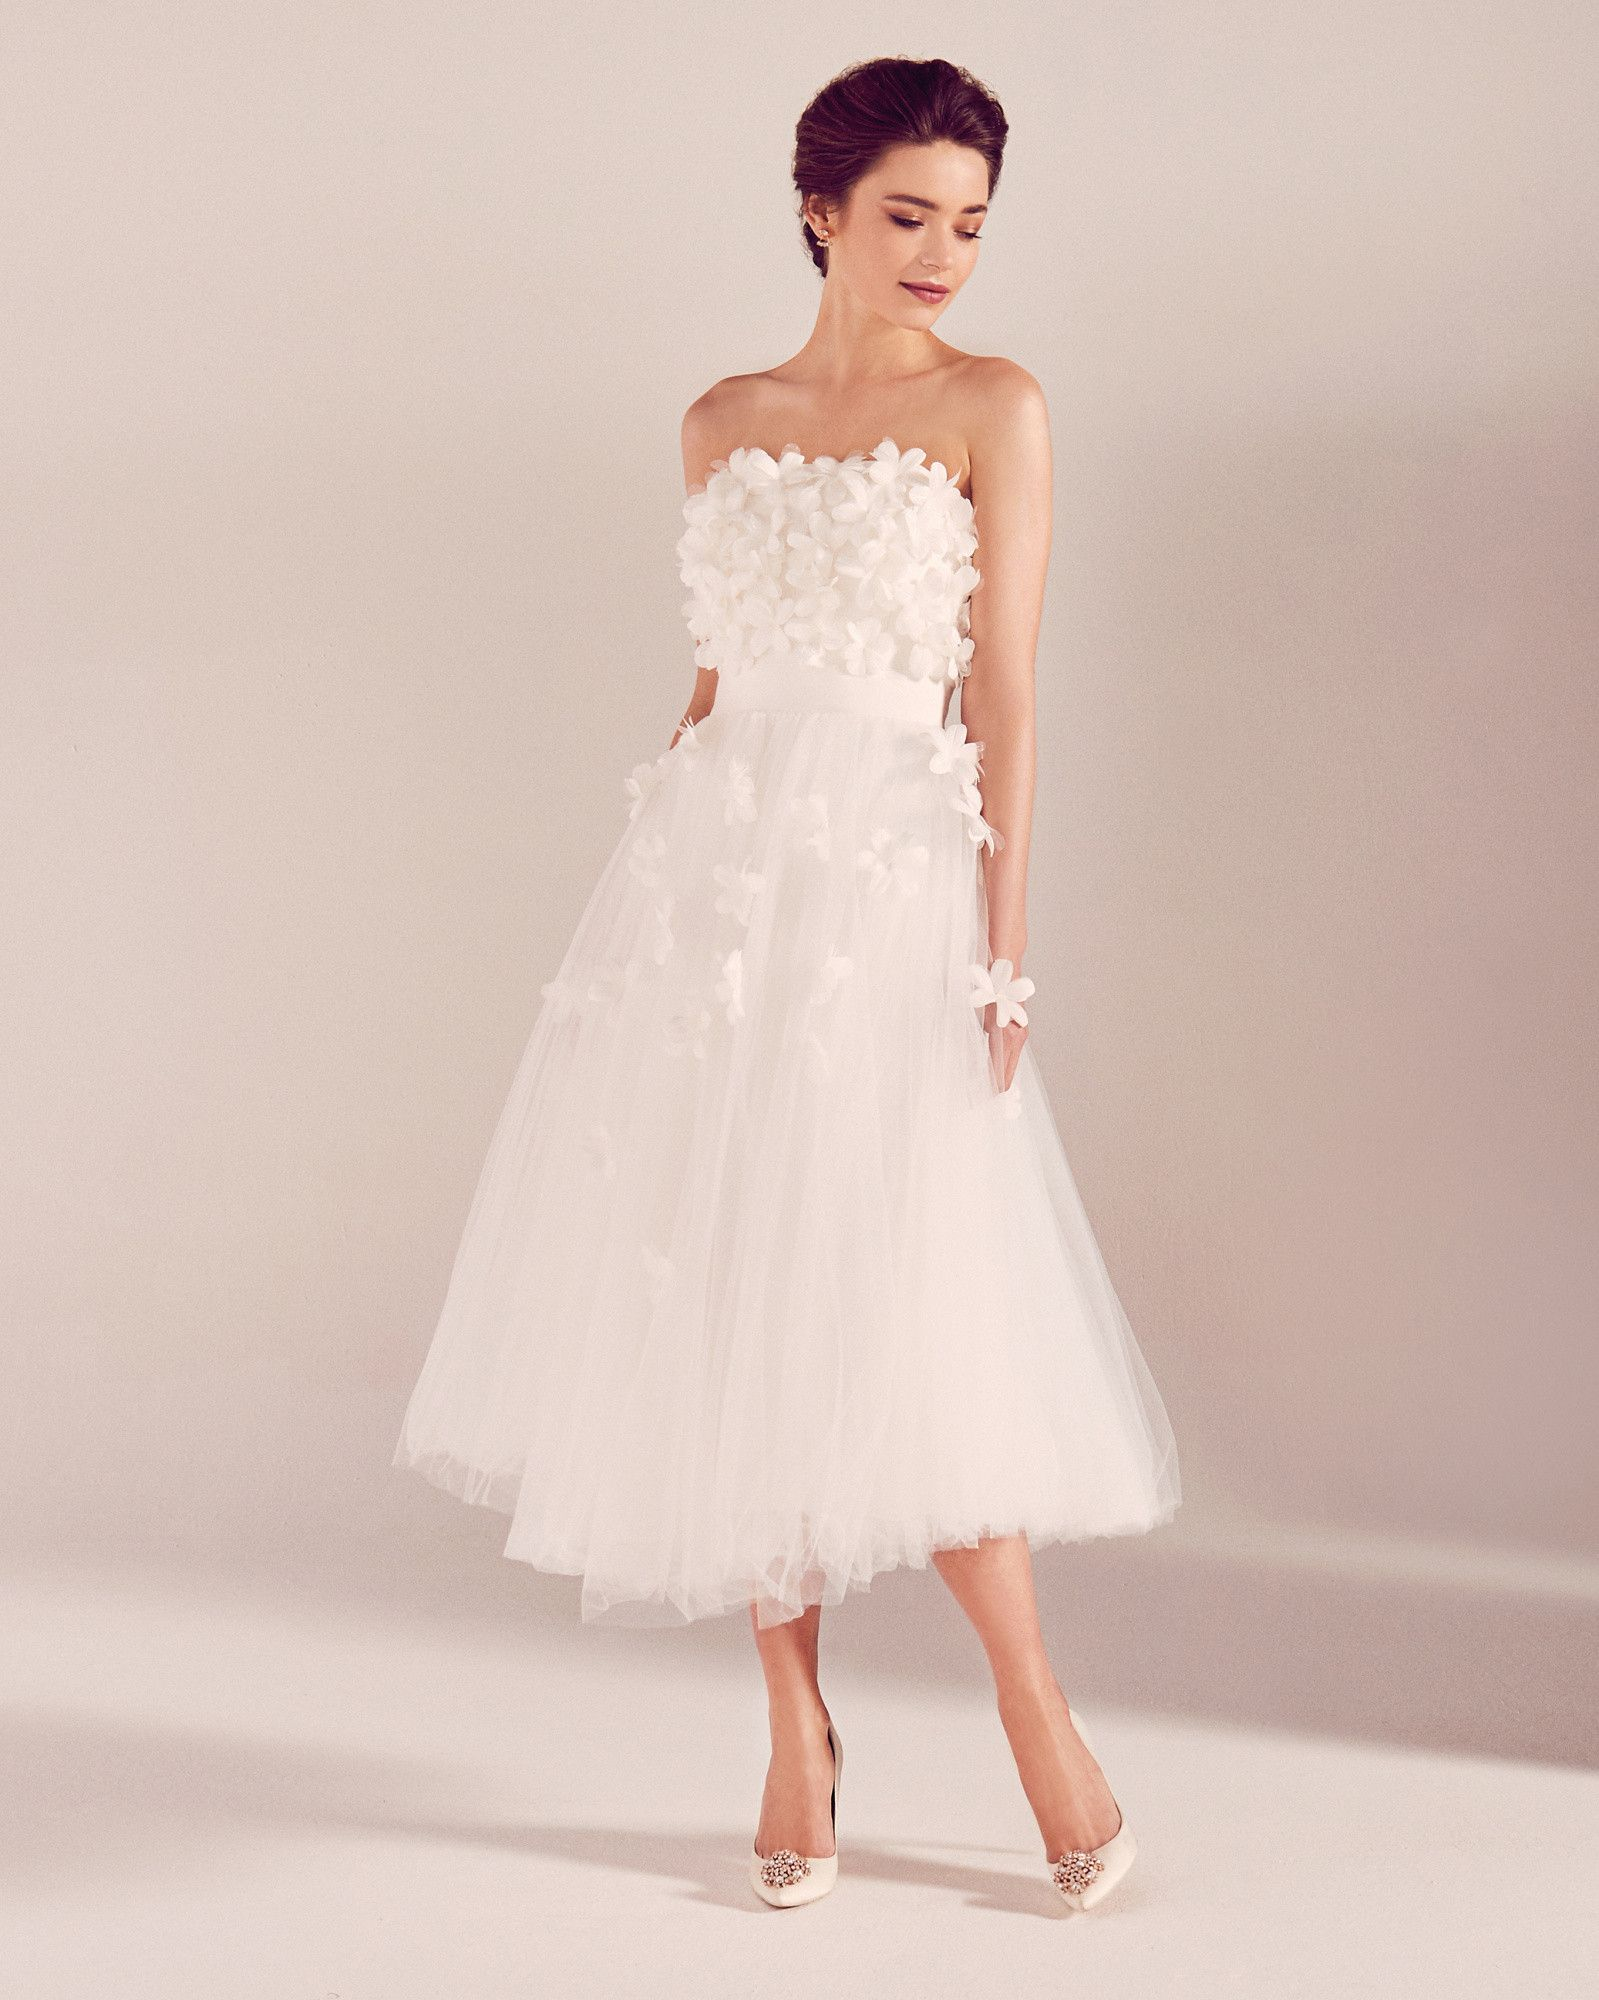 Floral appliqu tulle bridal dress white wedding for Designer brand wedding dresses